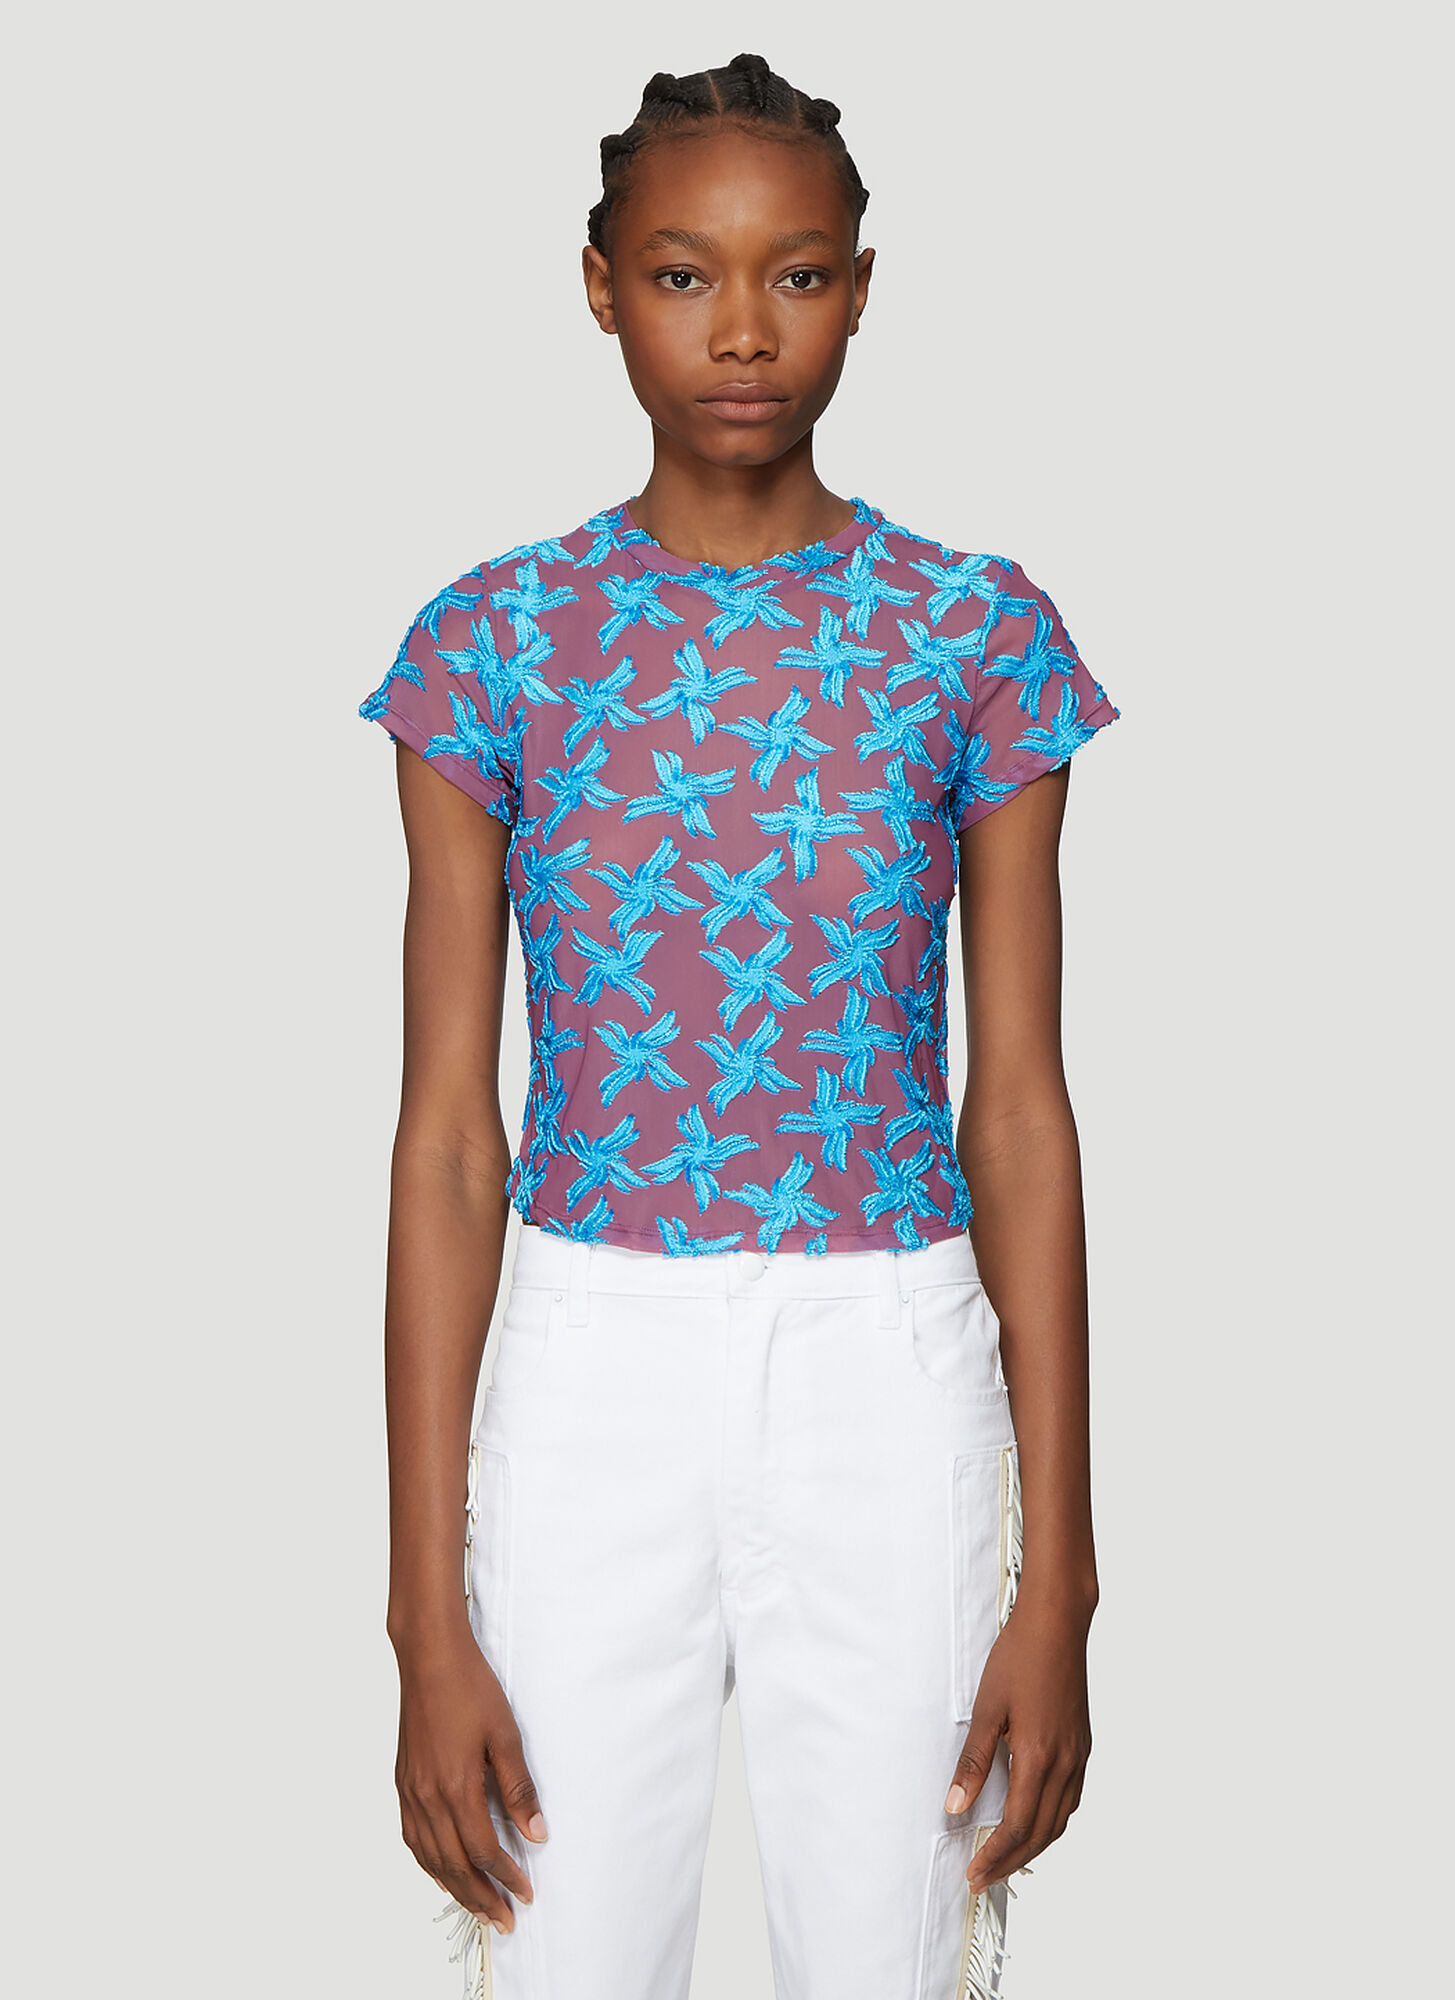 Eckhaus Latta Shrunk T-Shirt in Blue